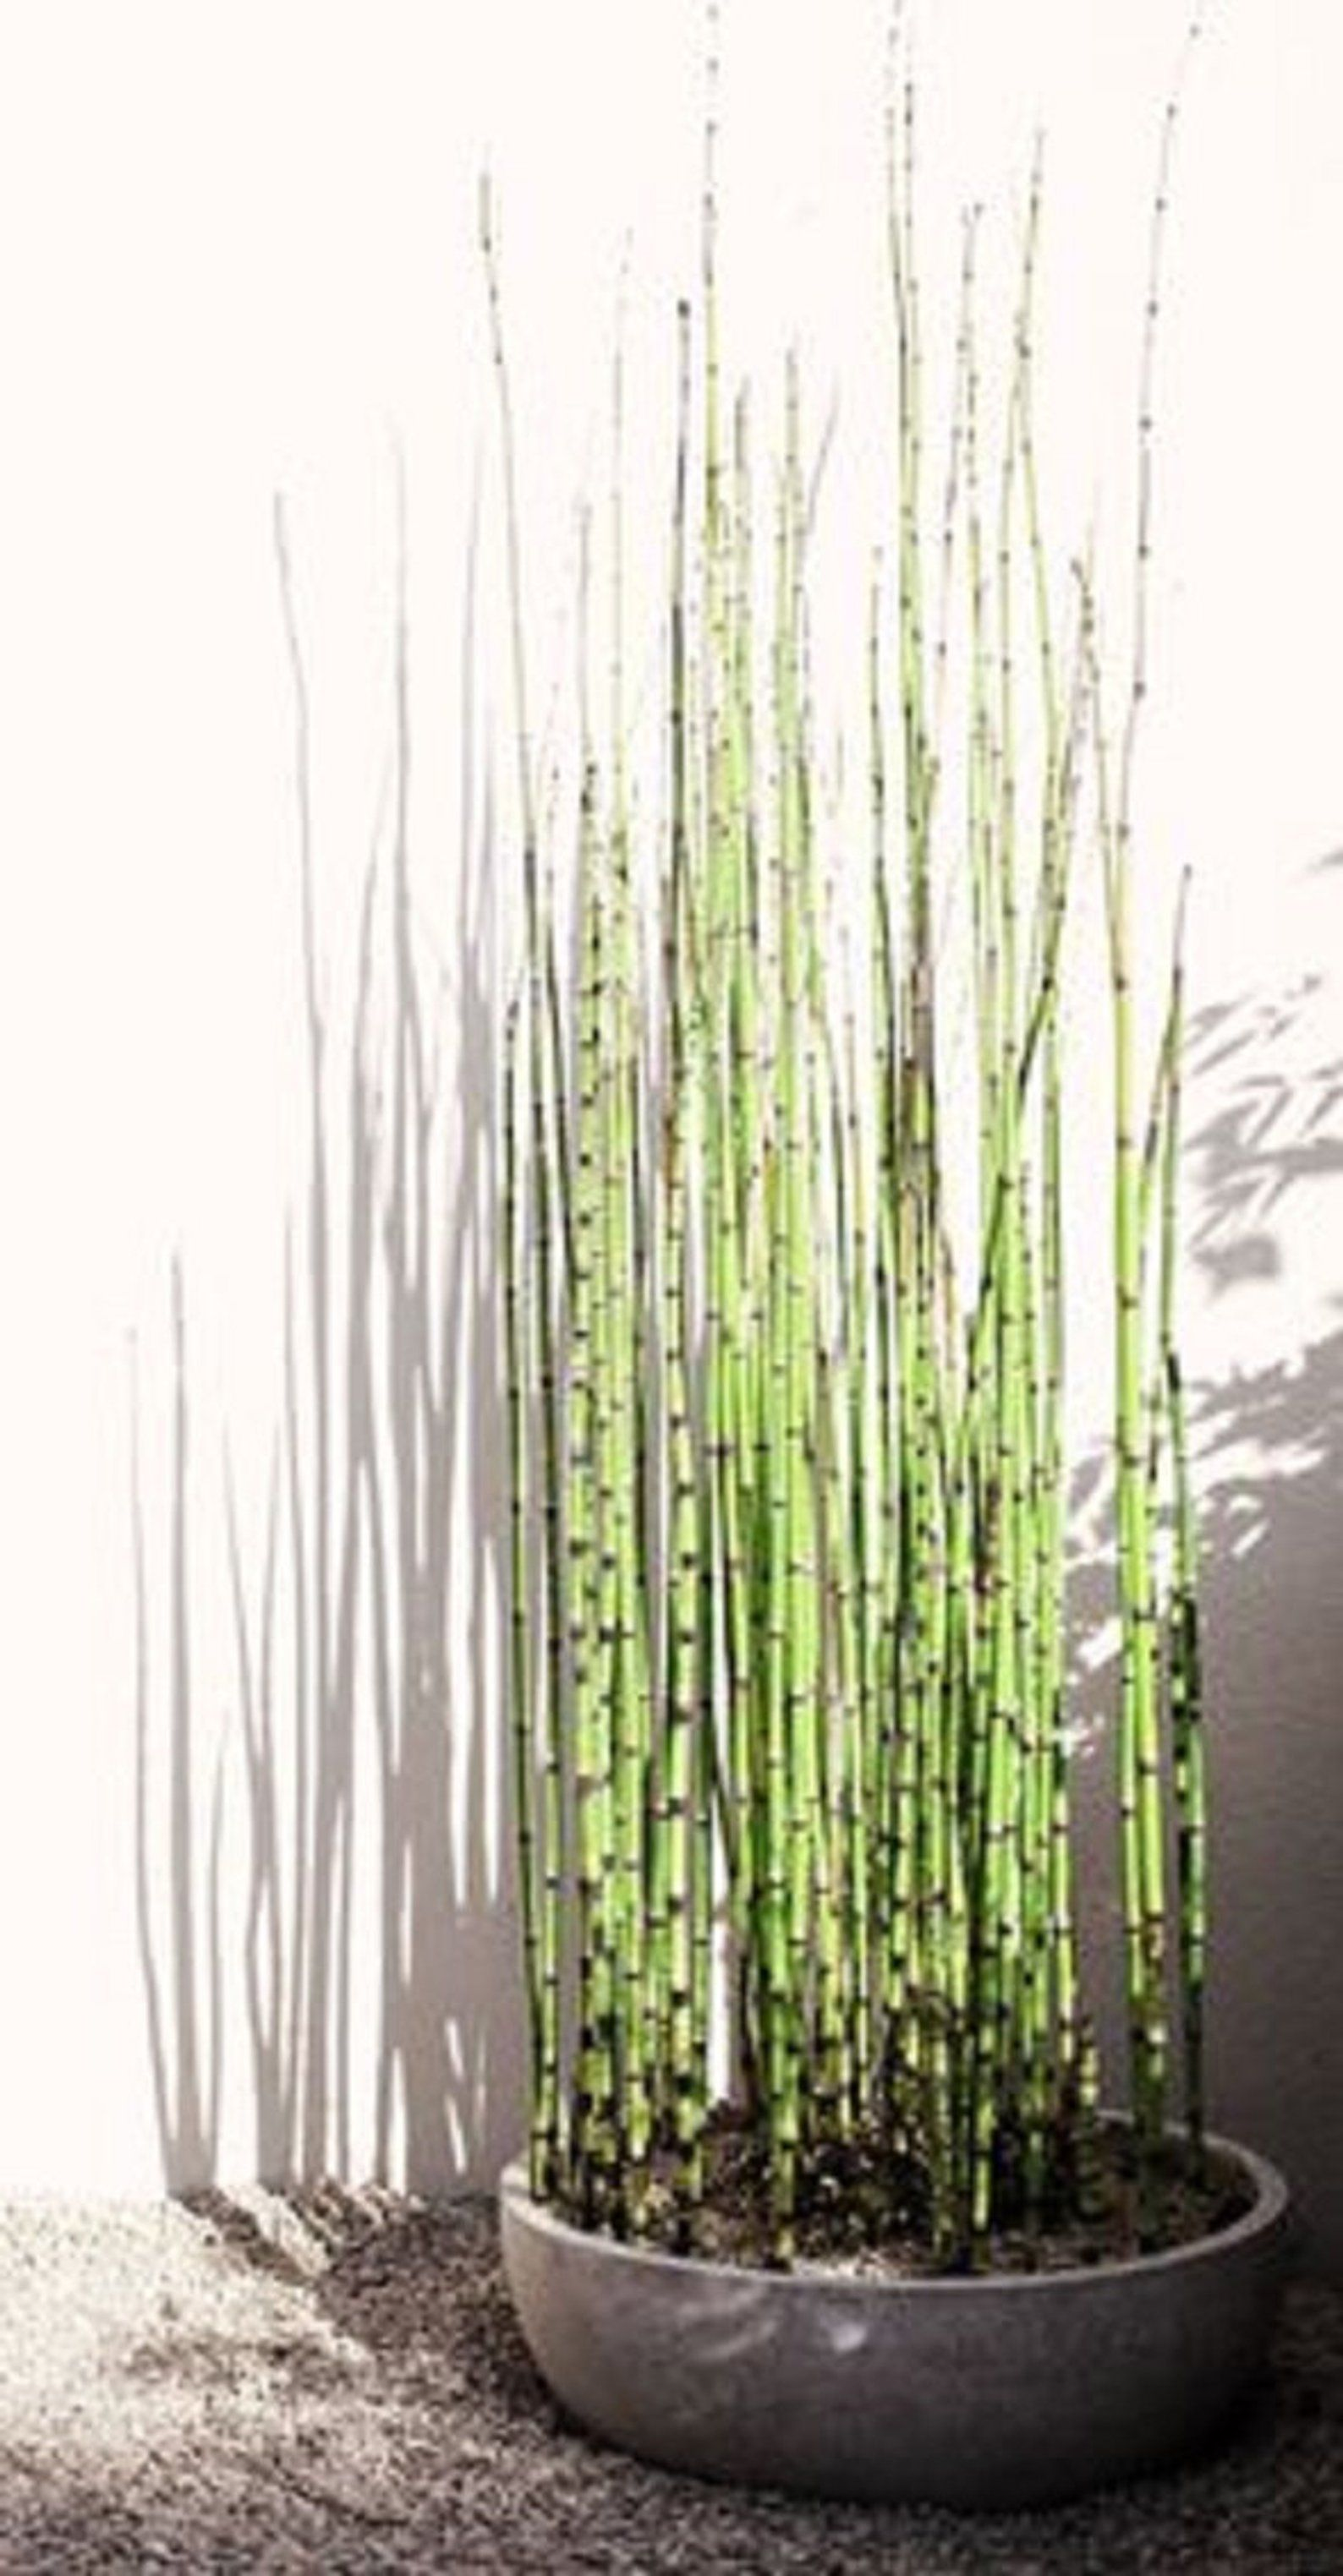 Photo of 15 x Horsetail Reed Bamboo Looking Zen Garden & Pond Plants 15 inches tall